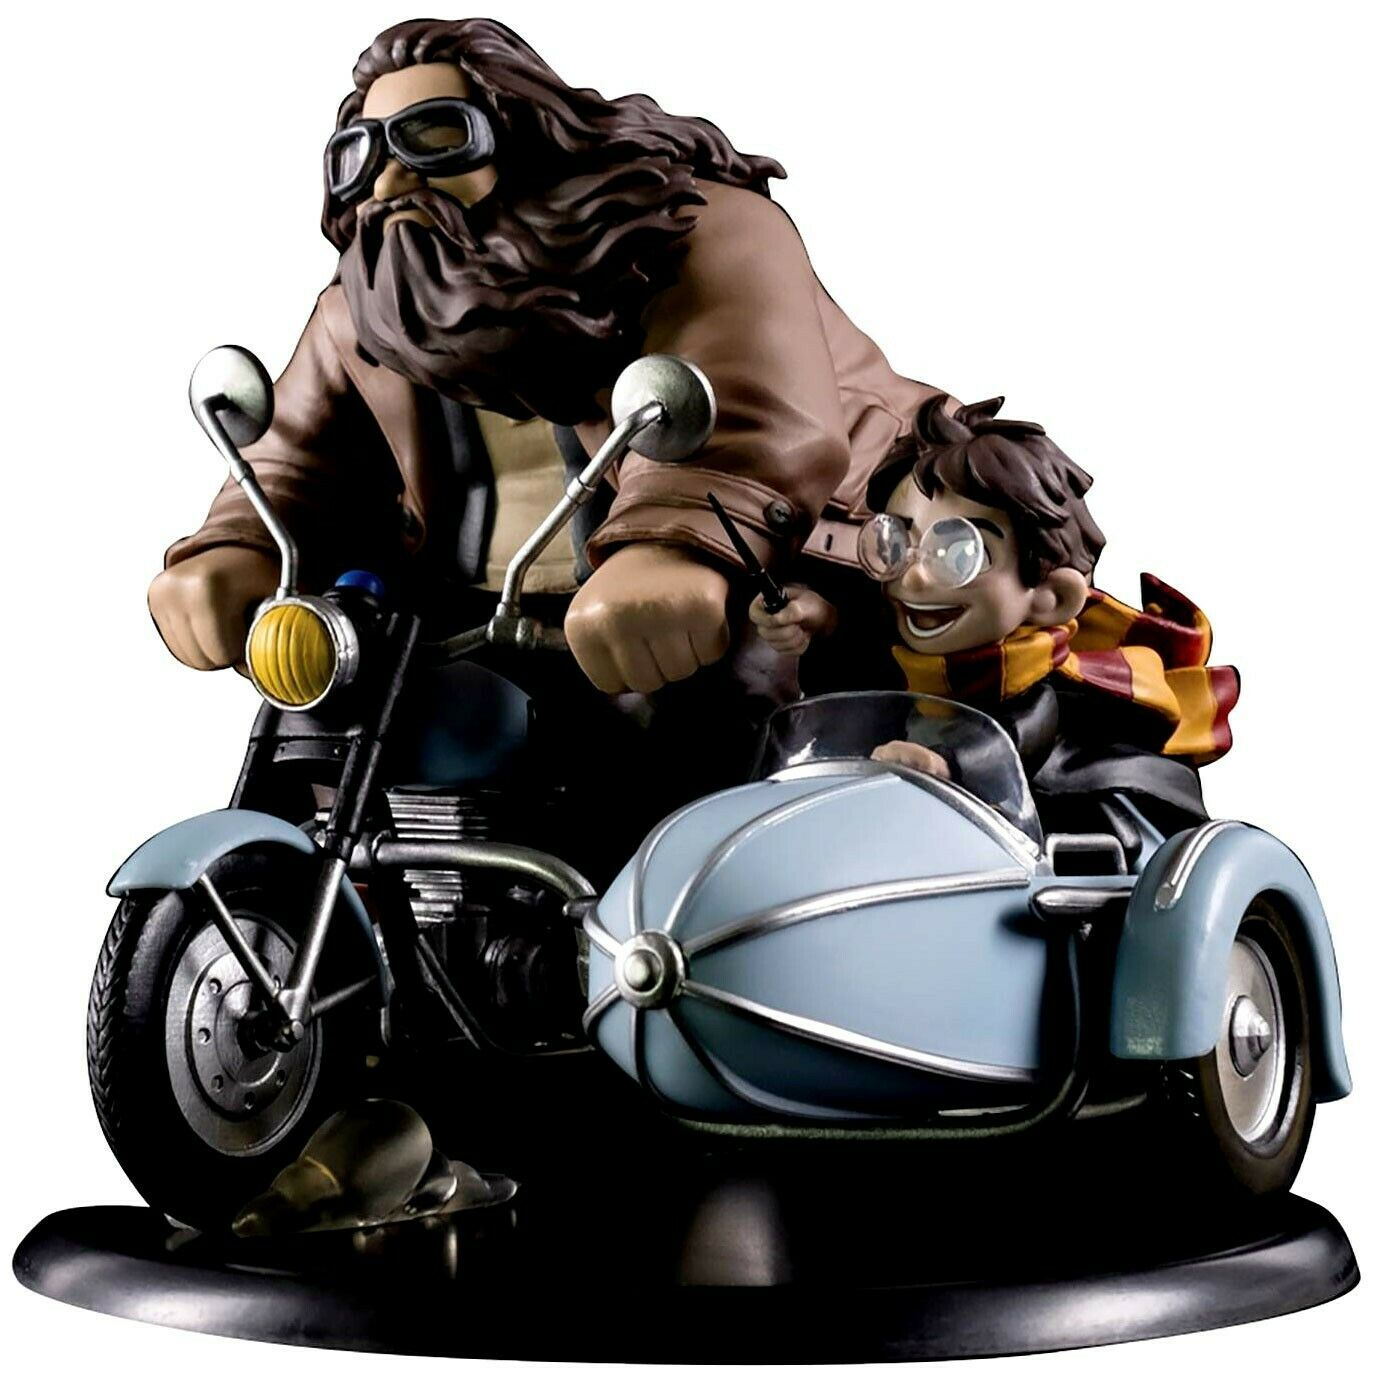 Harry Potter Q-Fig Hagrid & Harry on Motorcycle 6-Inch 6-Inch 6-Inch Figure 9c6874